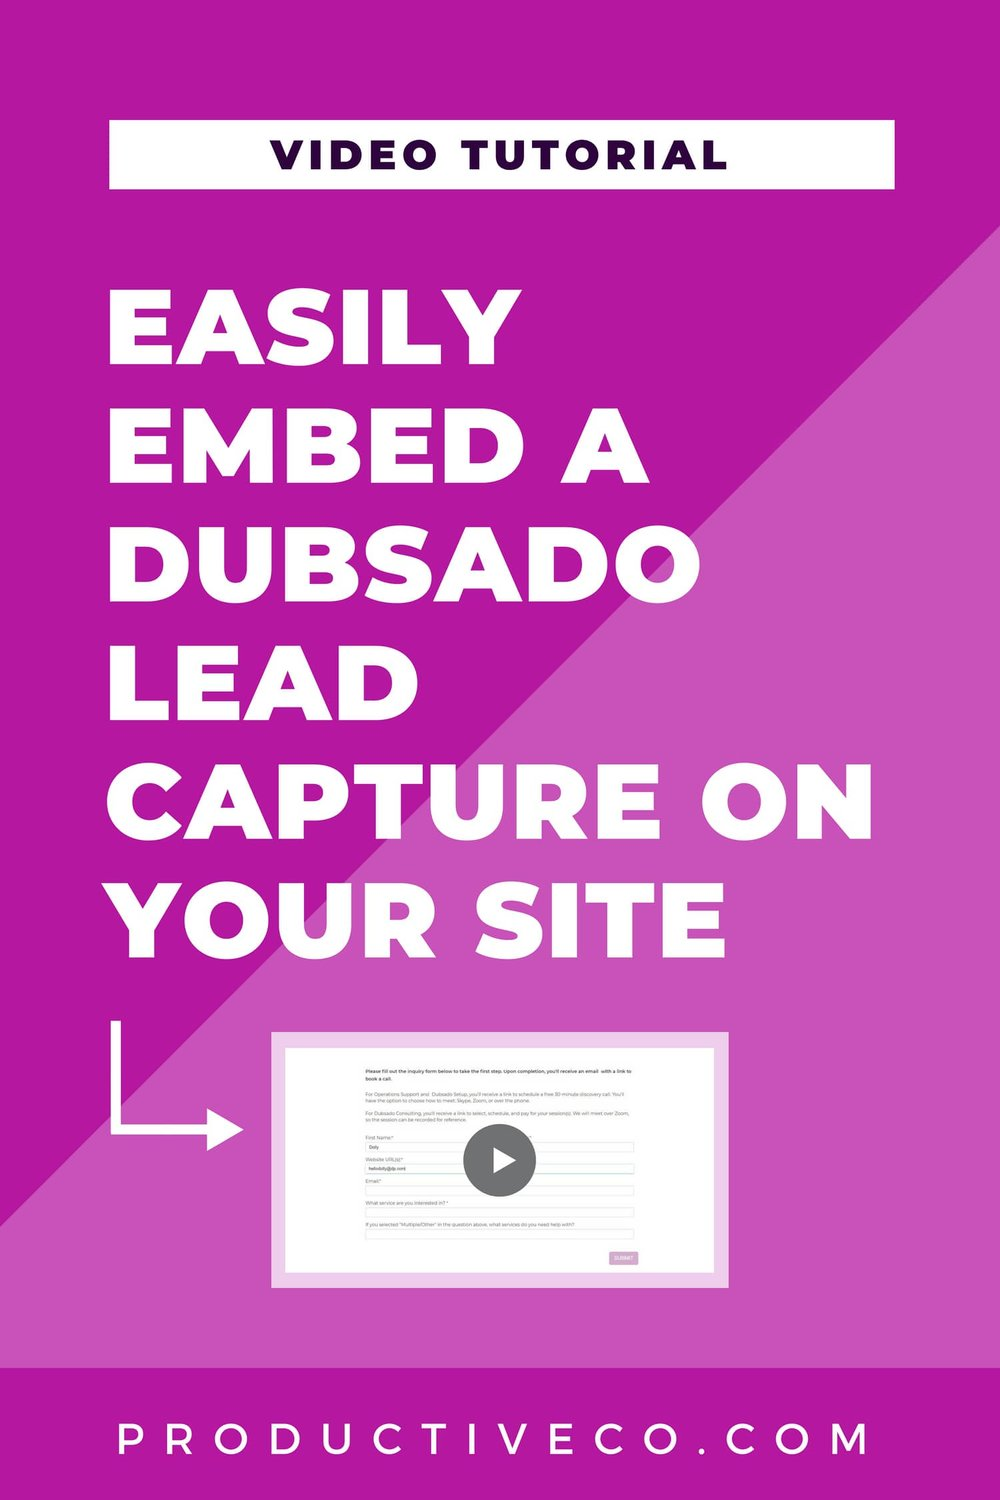 Dubsado lead captures give you two ways to share them: embed on your site or share a link to Dubsado's site. I show you how to embed a lead capture on your site here.